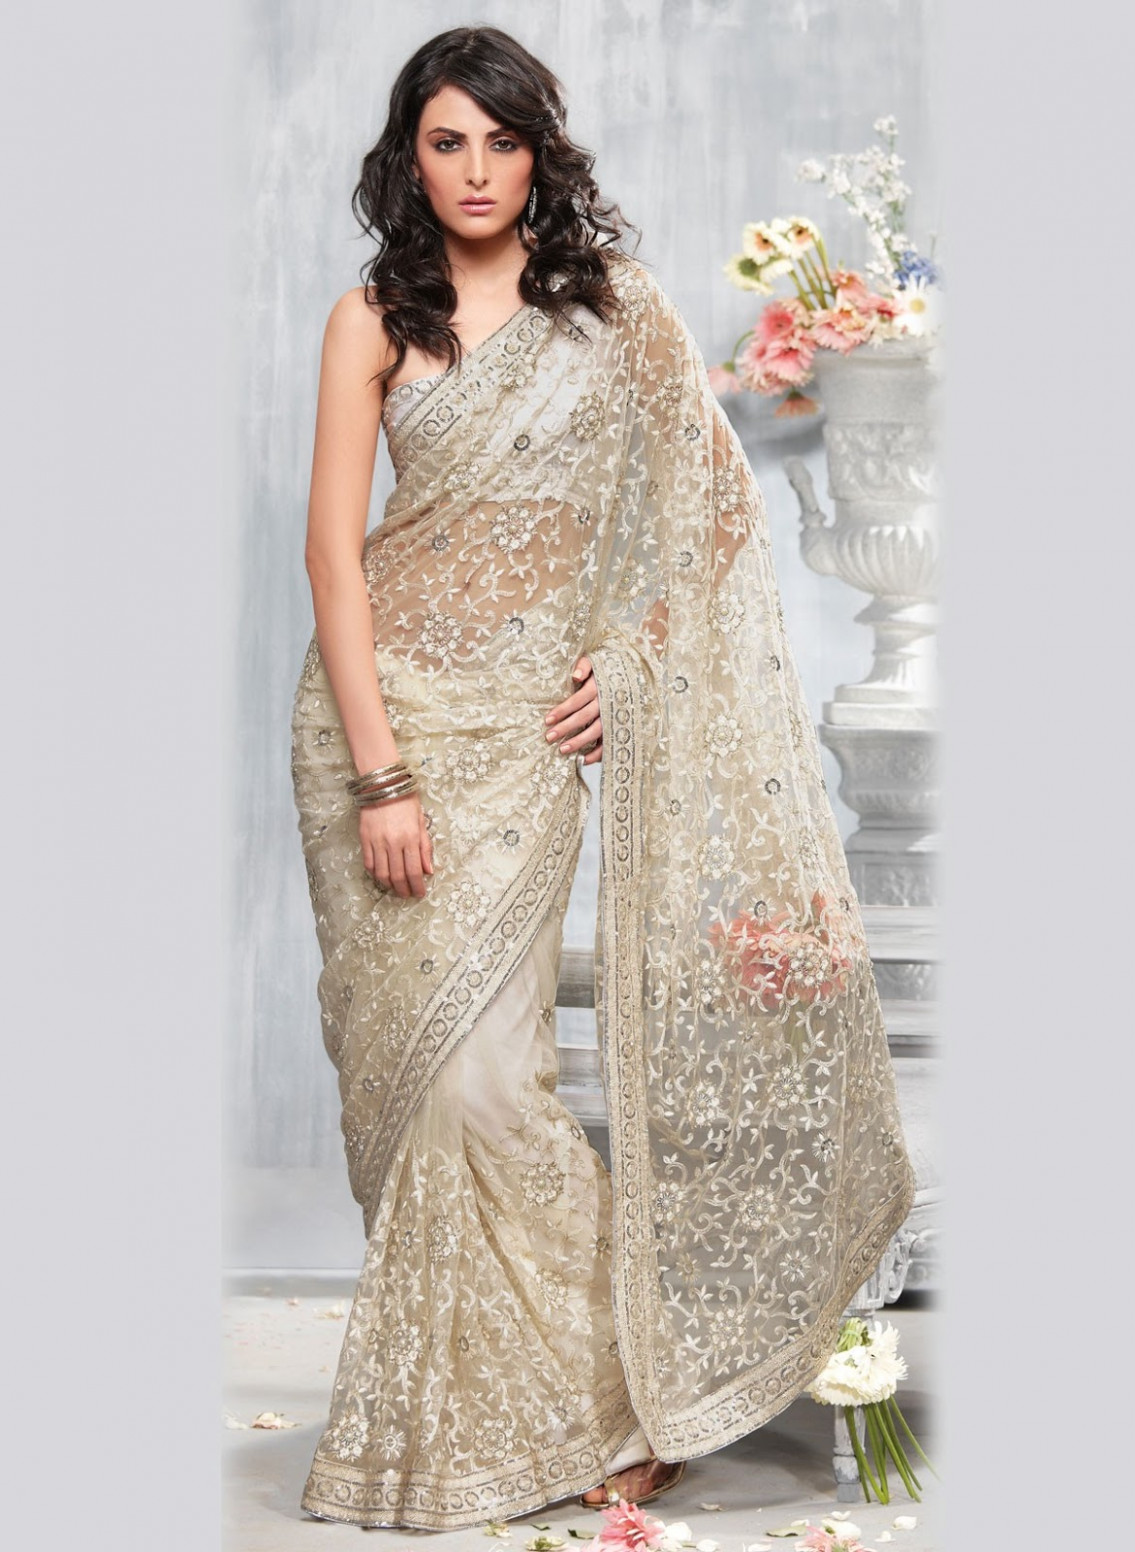 A WEDDING PLANNER: Party Wear Sares, Cocktail Sarees, Lace